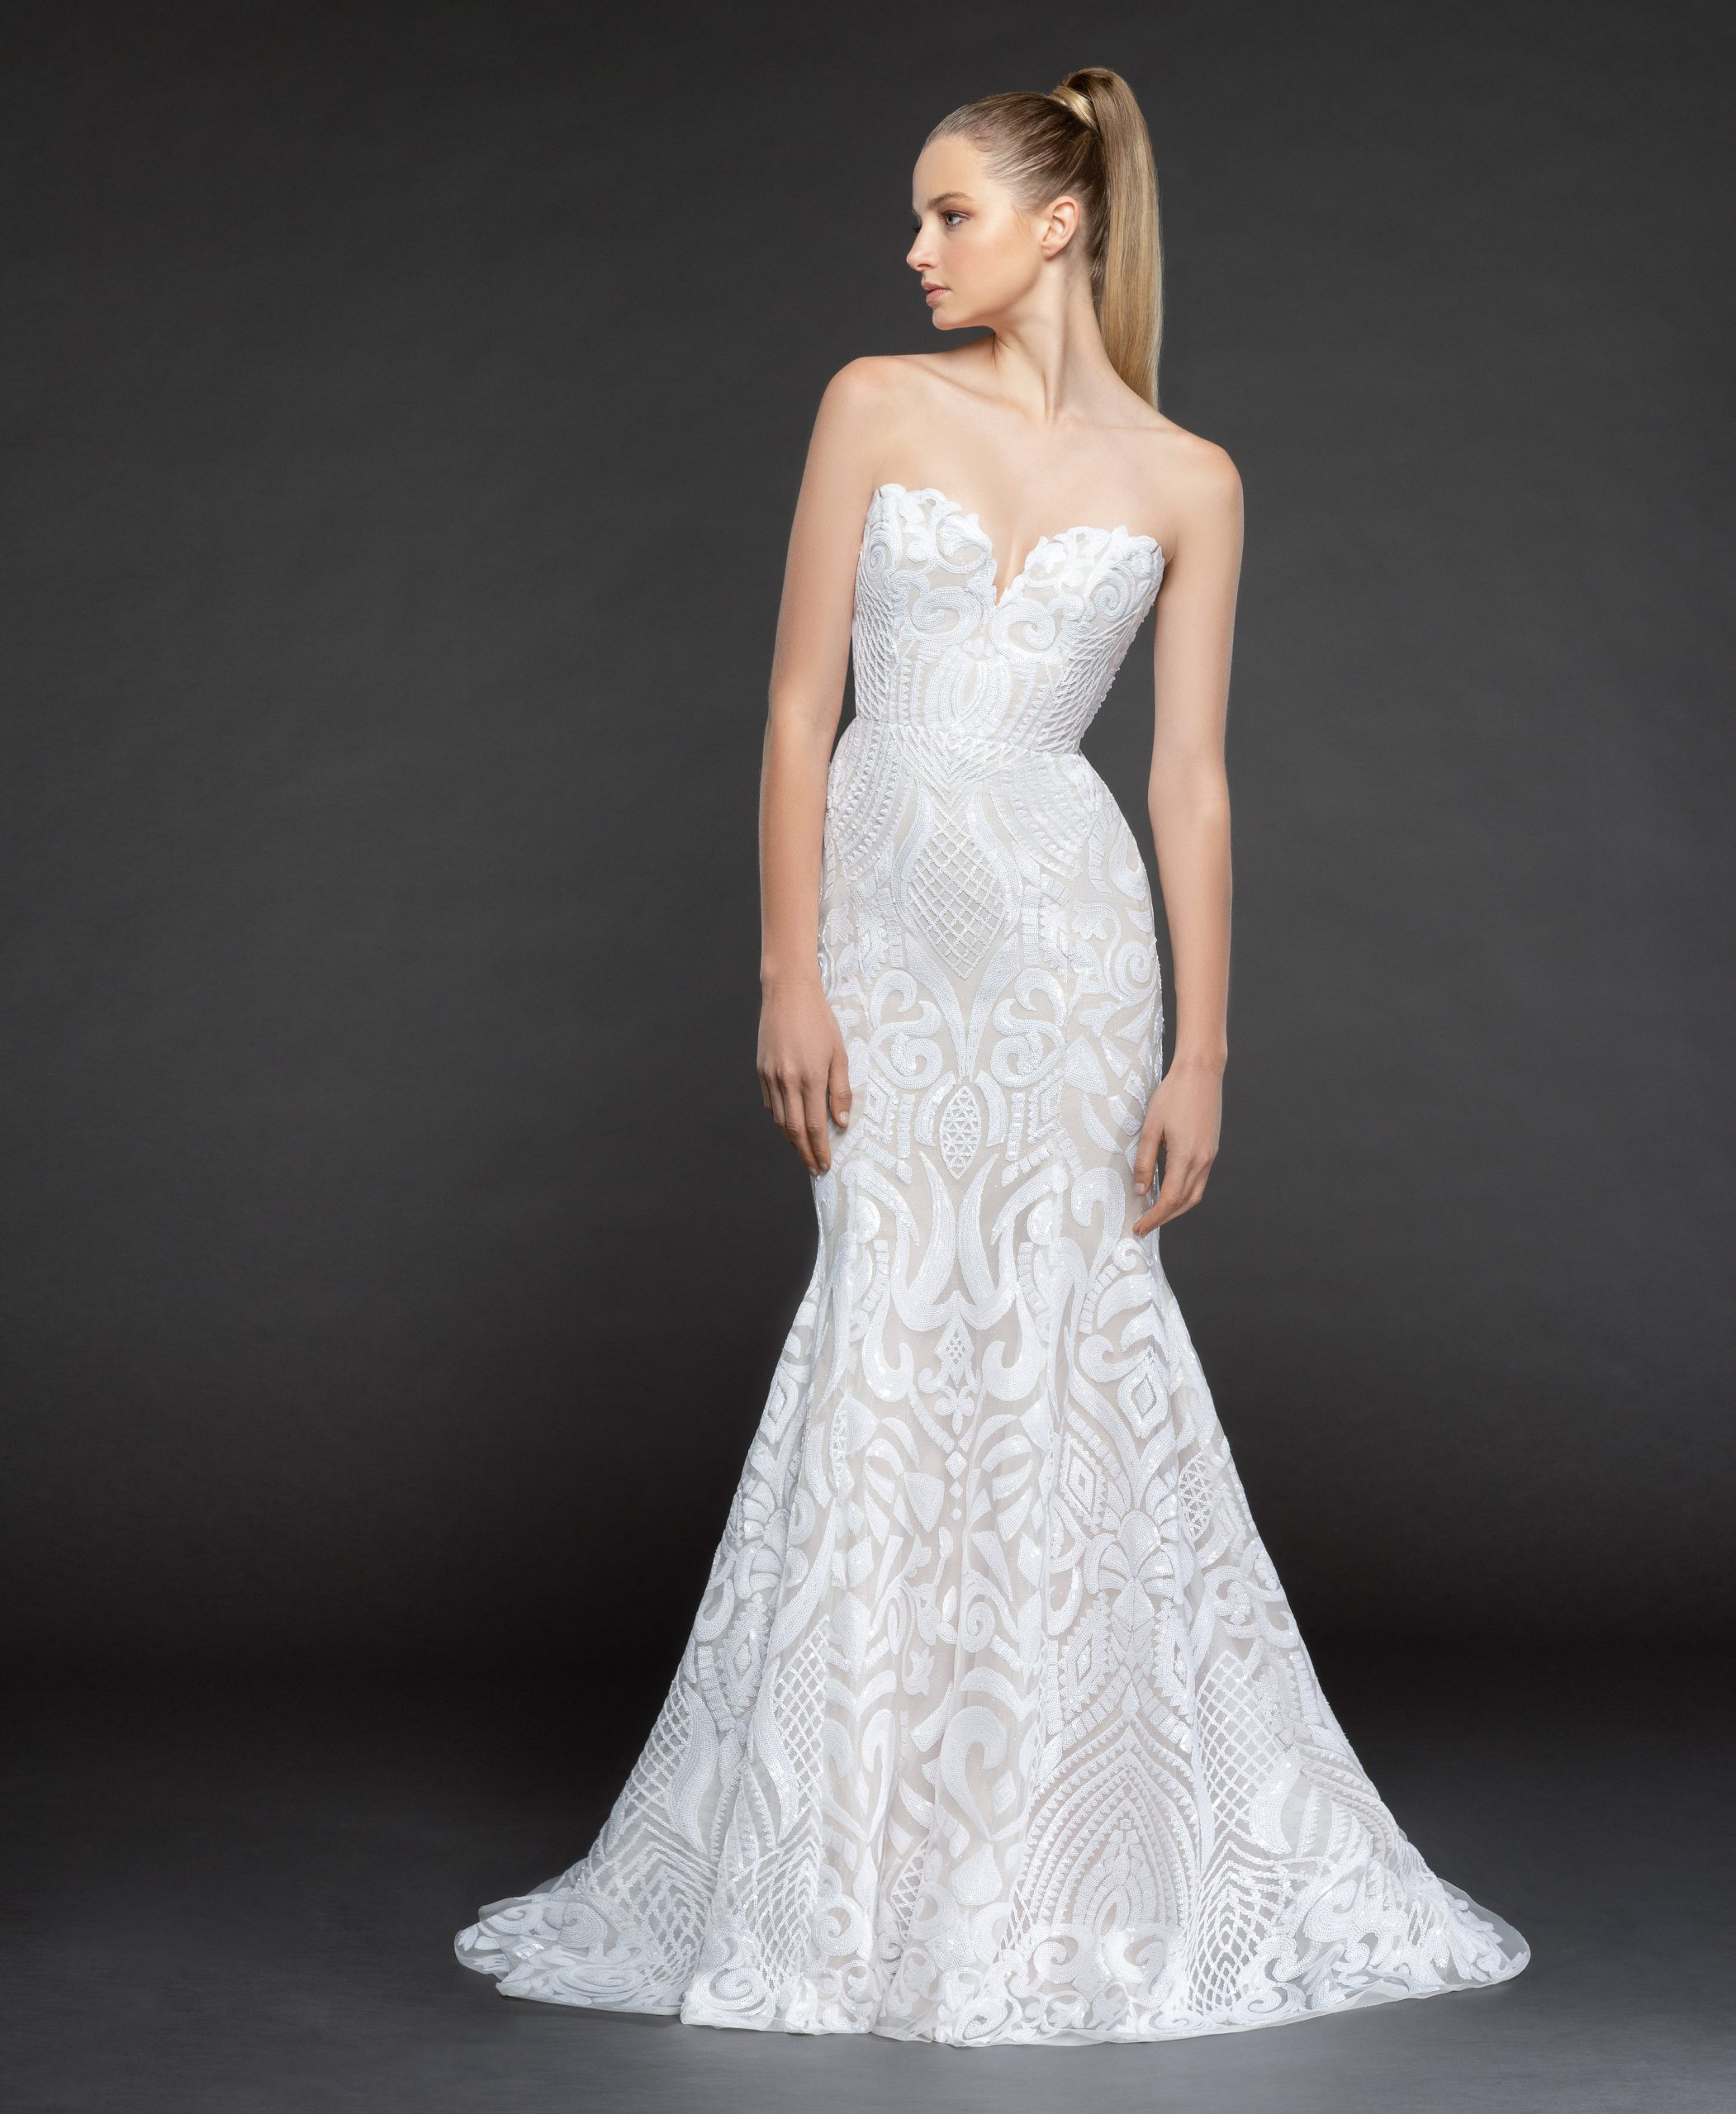 Strapless Beaded Fit And Flare Wedding Dress With Scallop Accent Kleinfeld Bridal